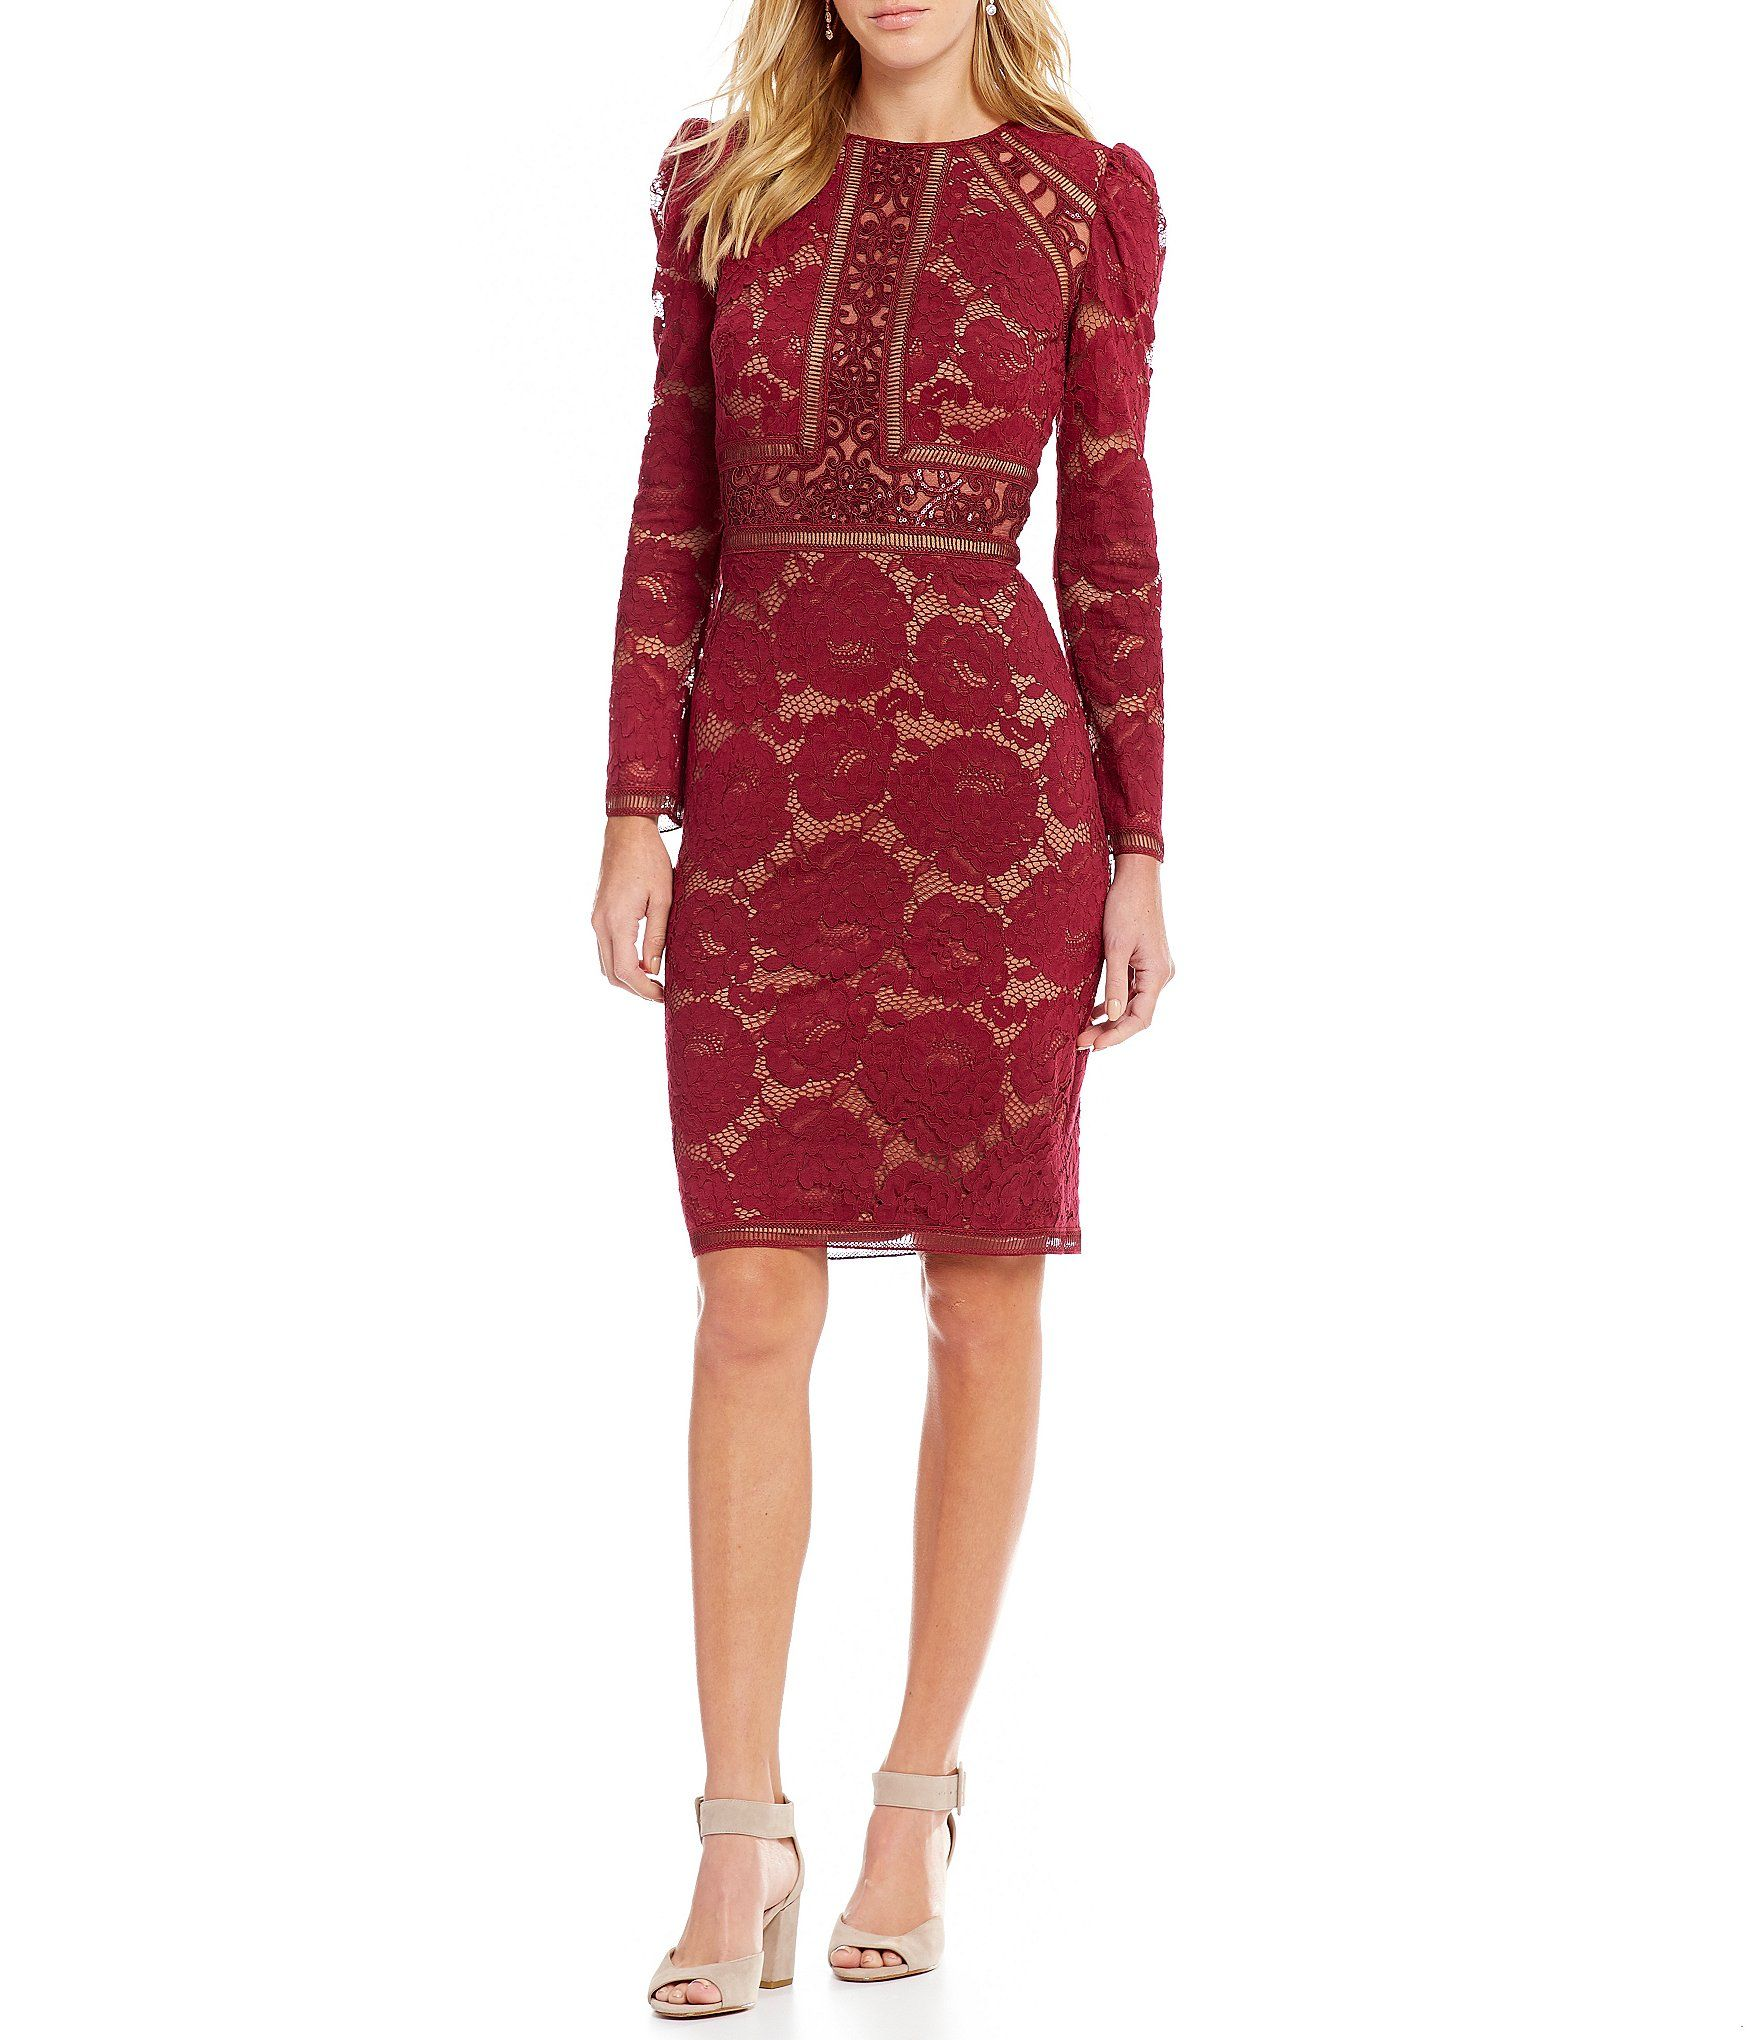 3aaee5dbb2 Tadashi Shoji Lace Long Sleeve Sheath Dress